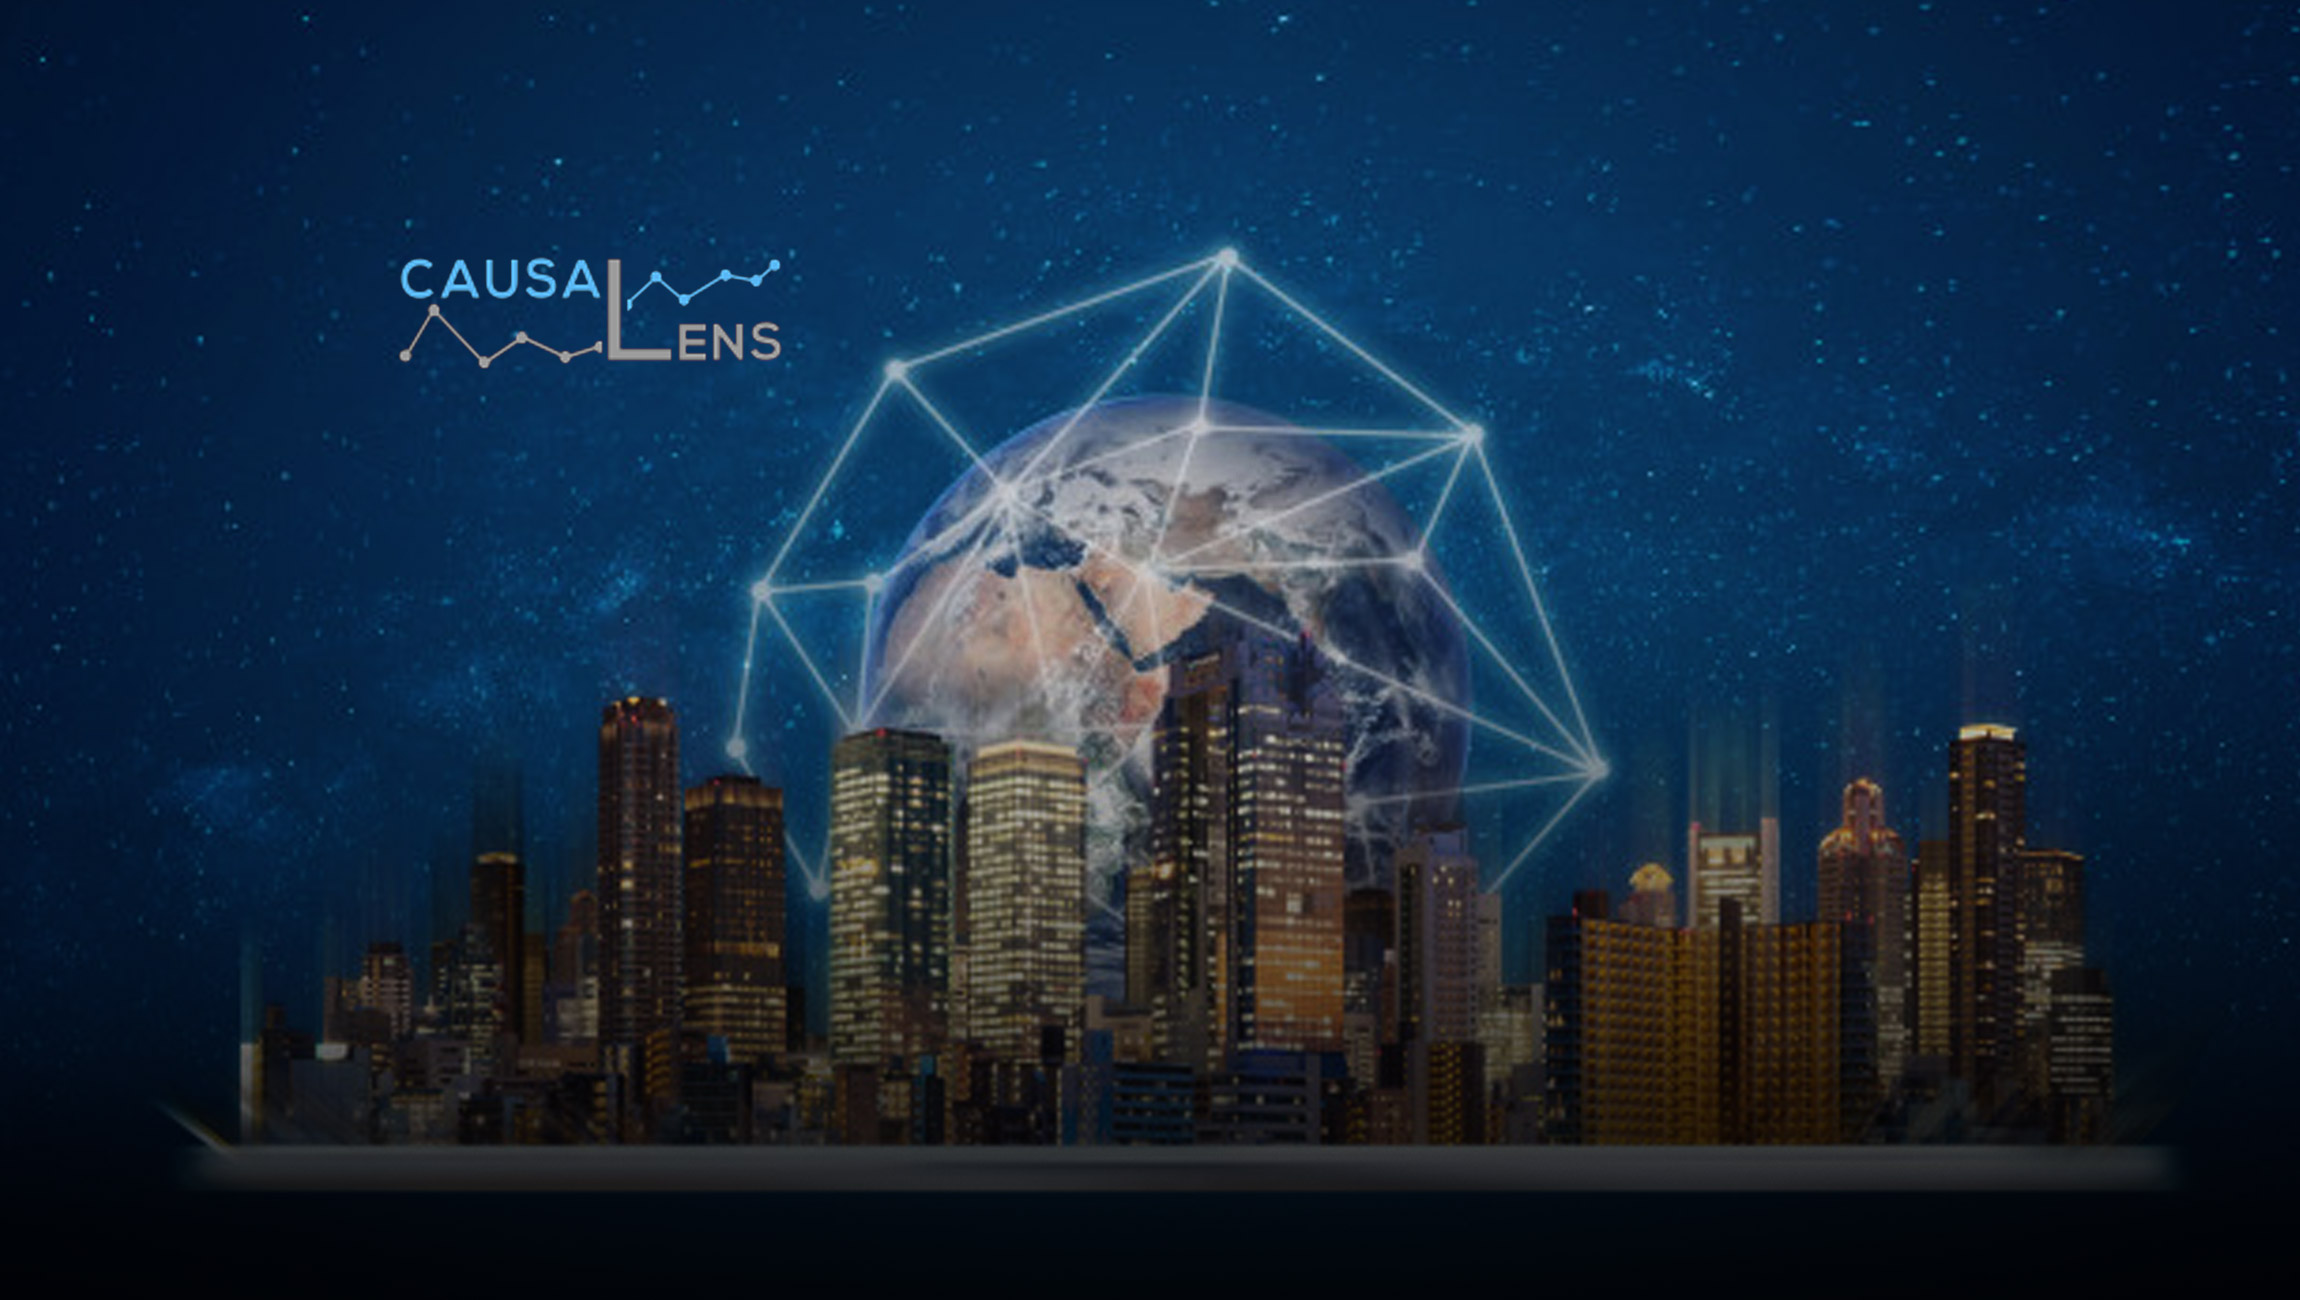 causaLens launches the first causal AI platform